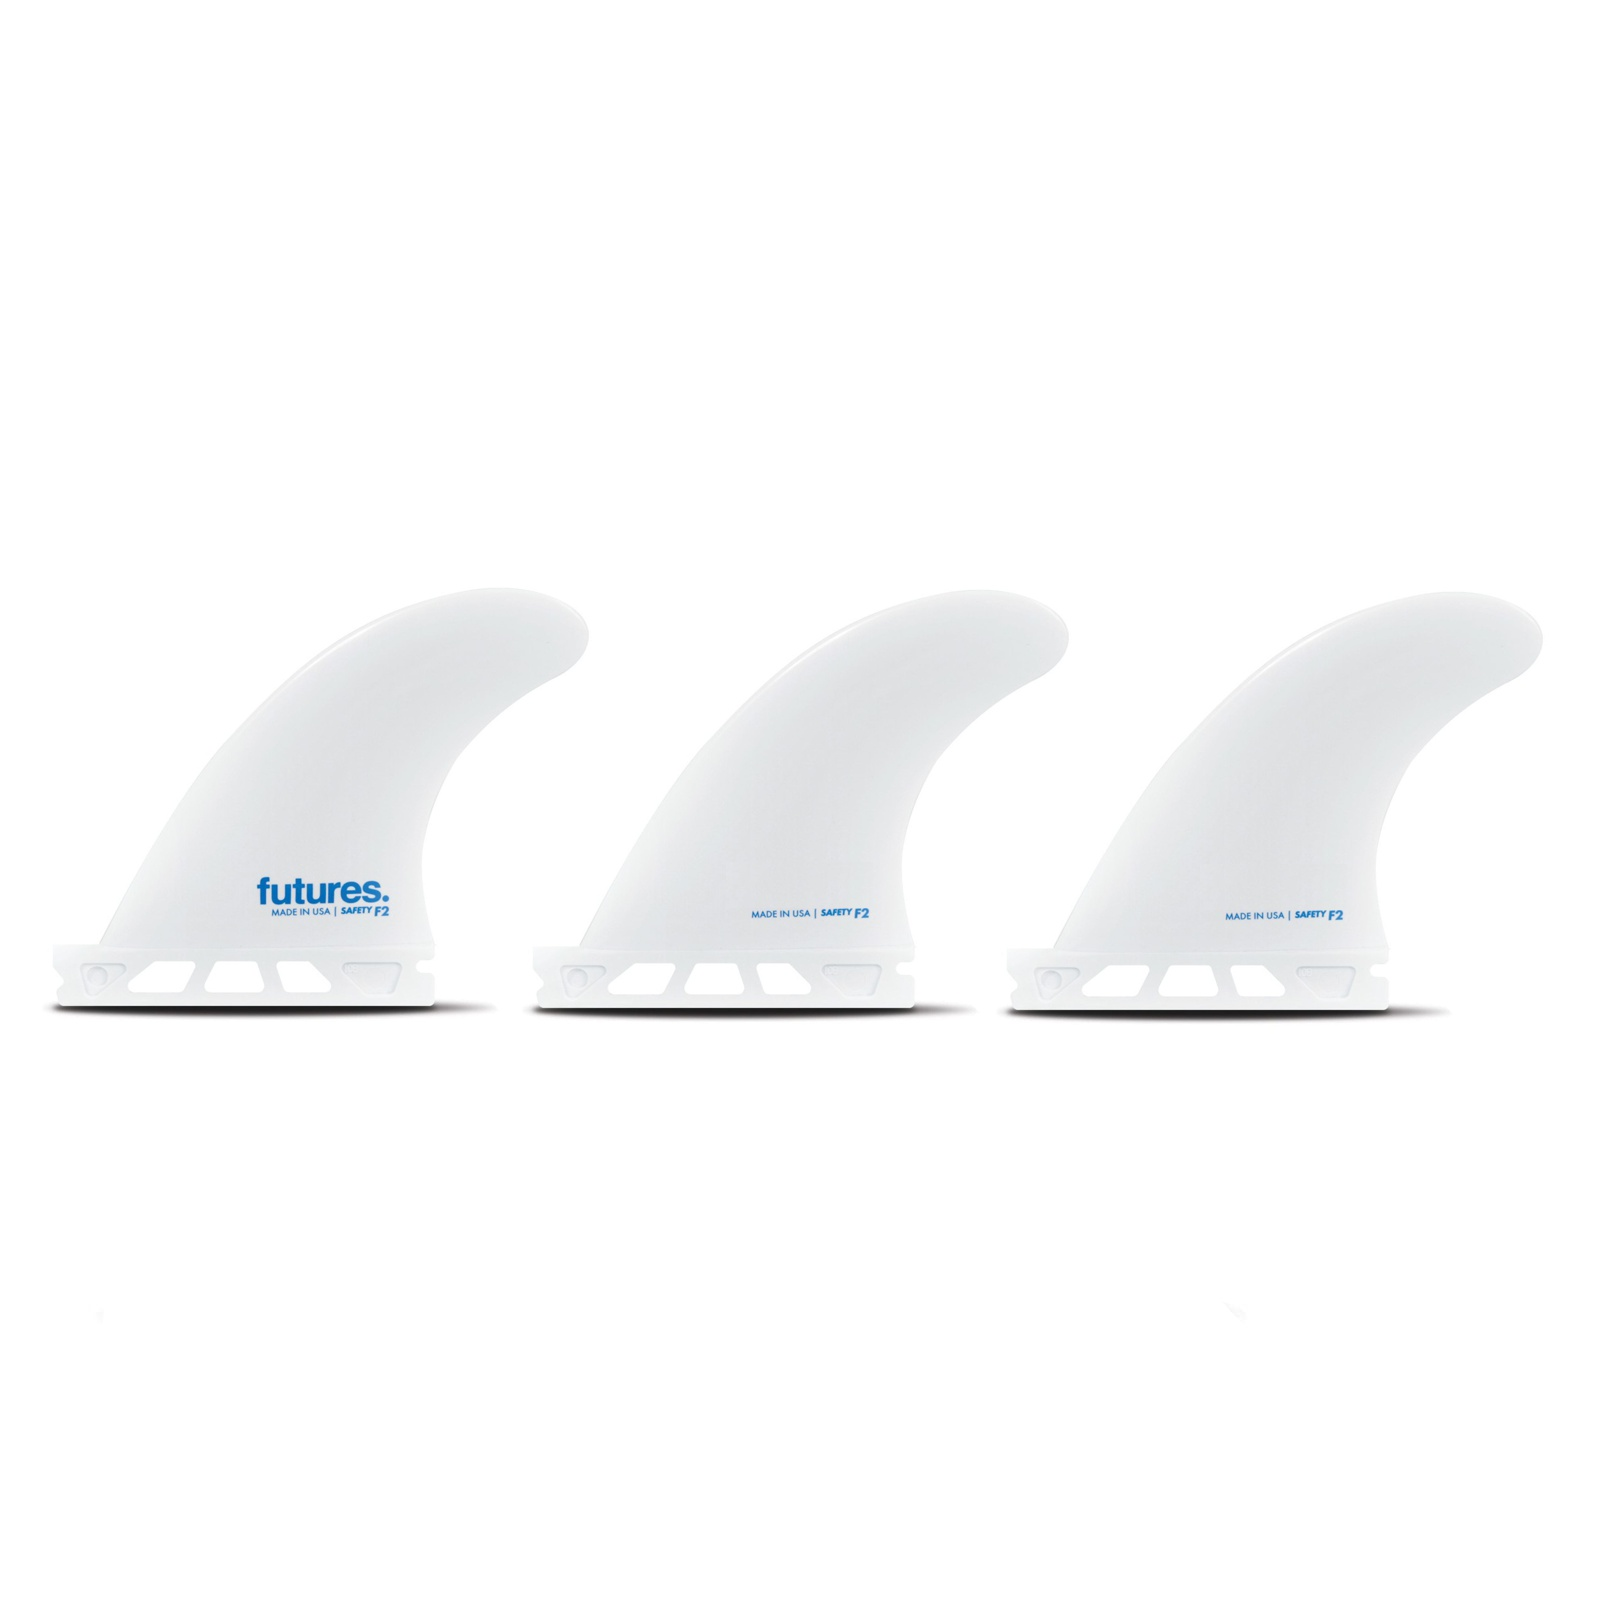 FUTURES Thruster Fin Set F2 SOFT Safety